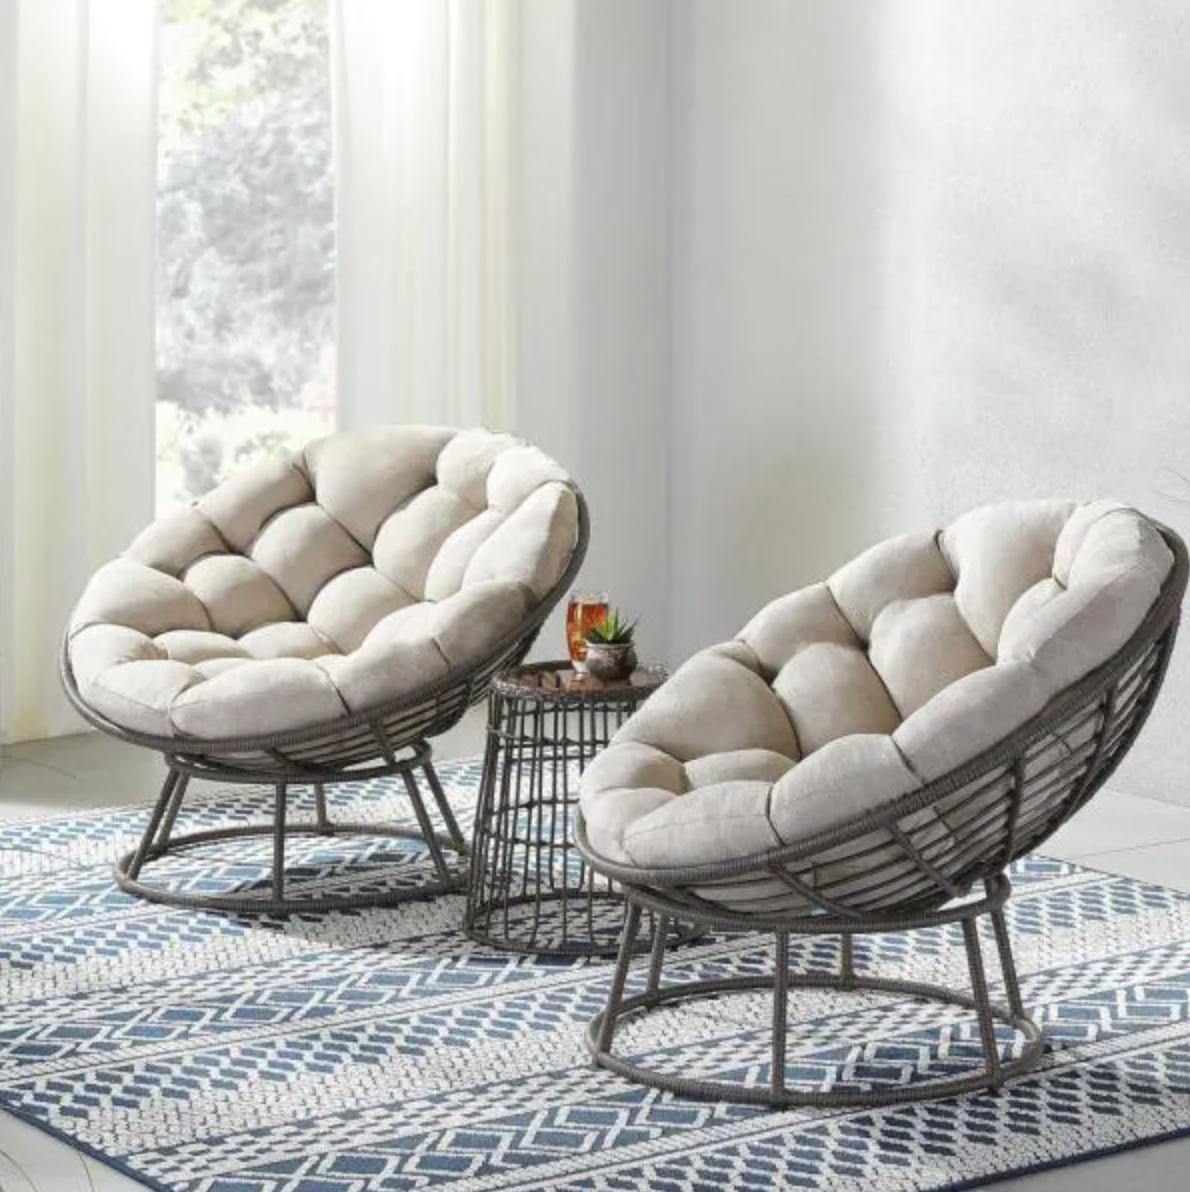 Tuckberry 3 Piece Set withPutty Tan Cushions